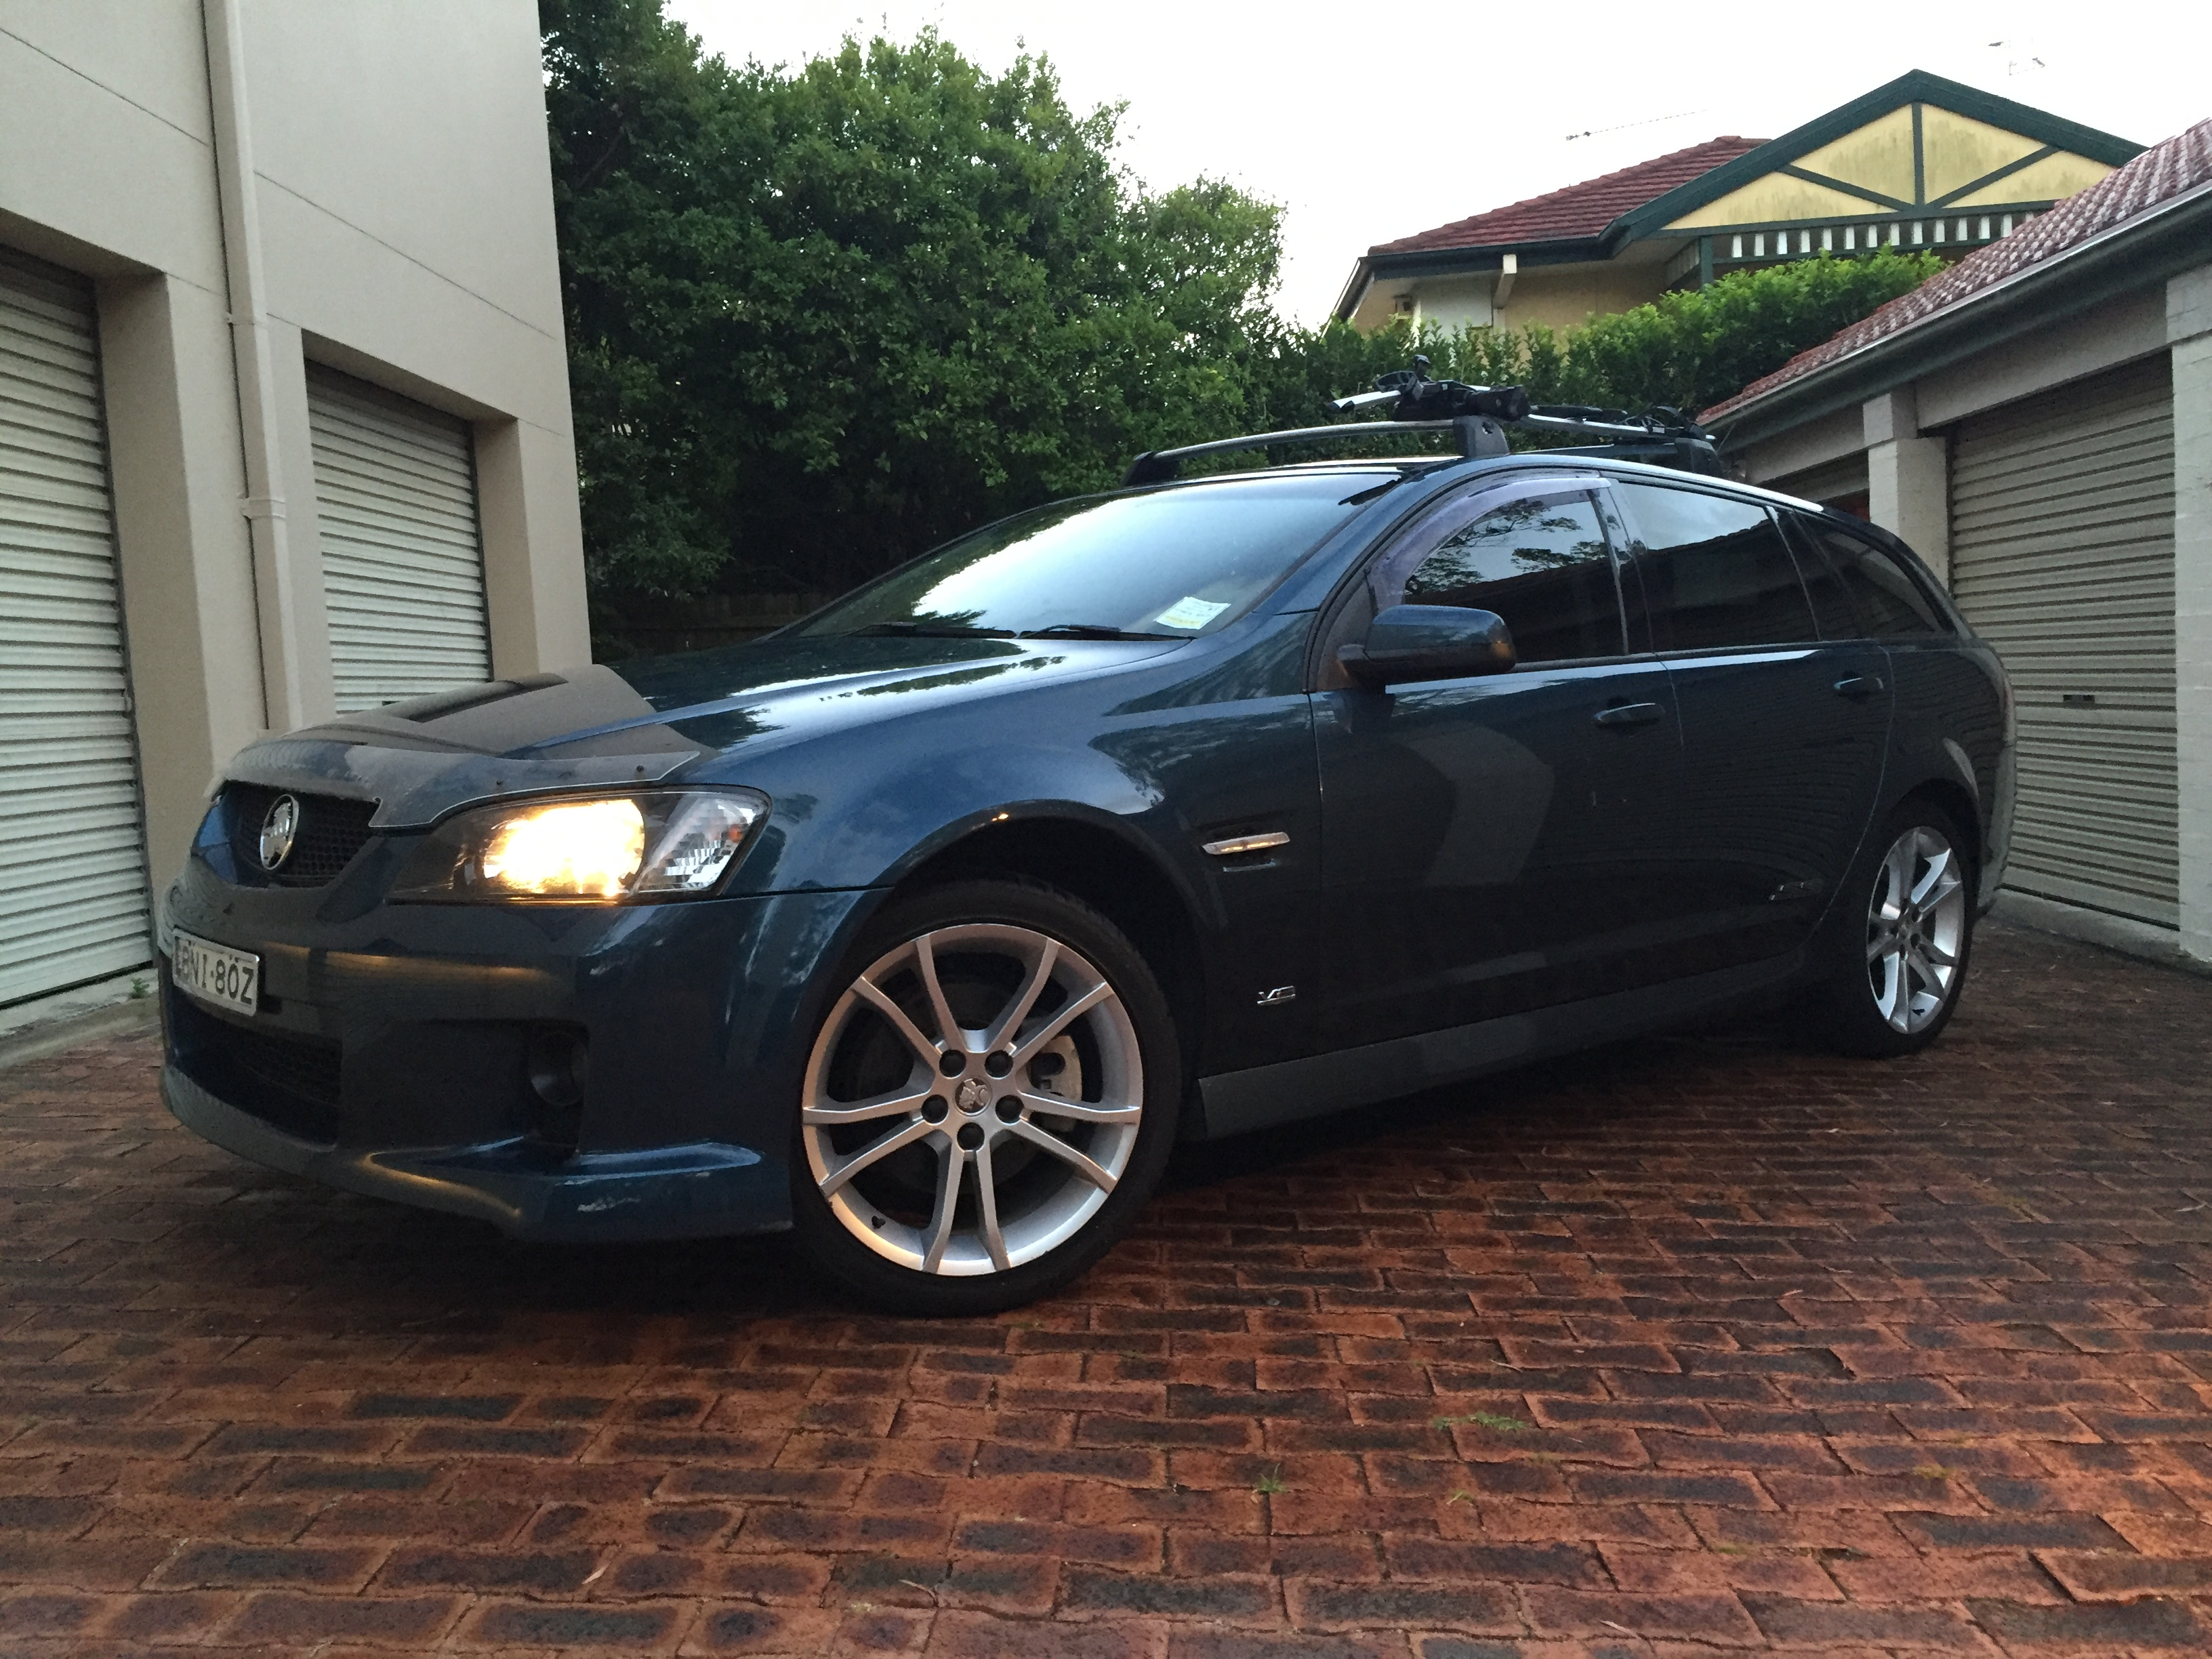 Picture of Paul's 2010 Holden Commodore